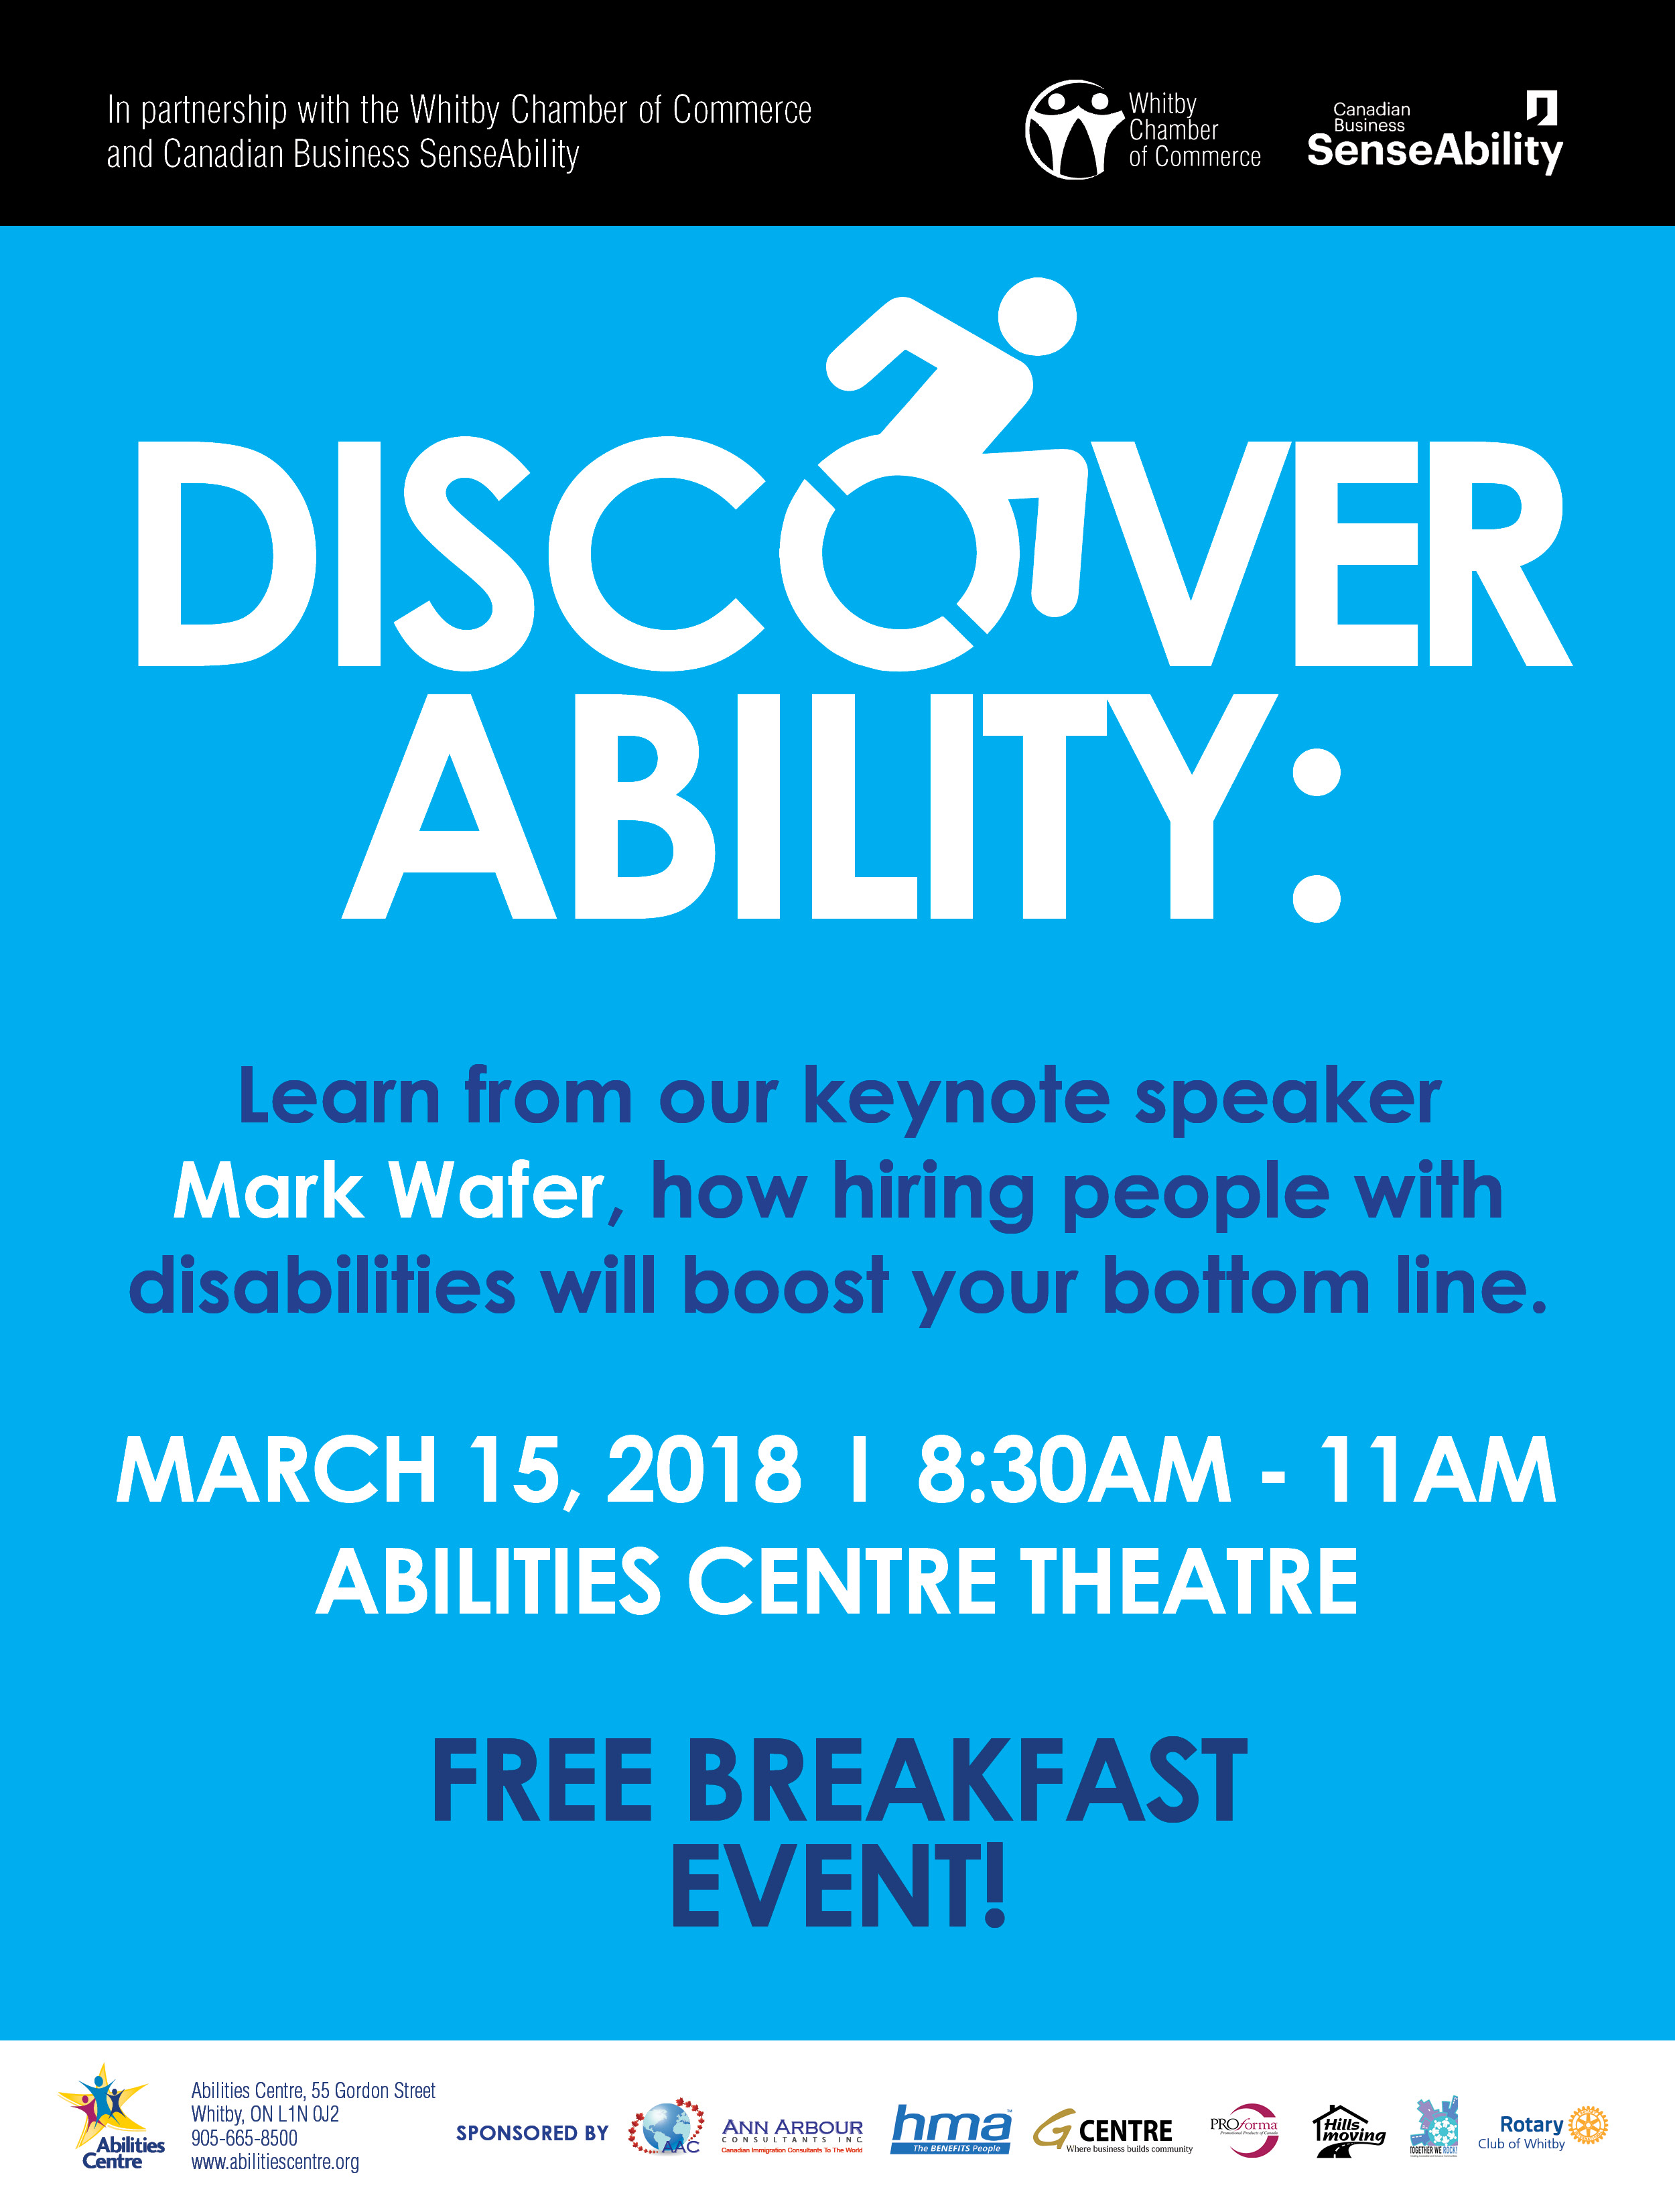 Learn from keynote speaker, Mark Wafer, at free breakfast event on March 15.